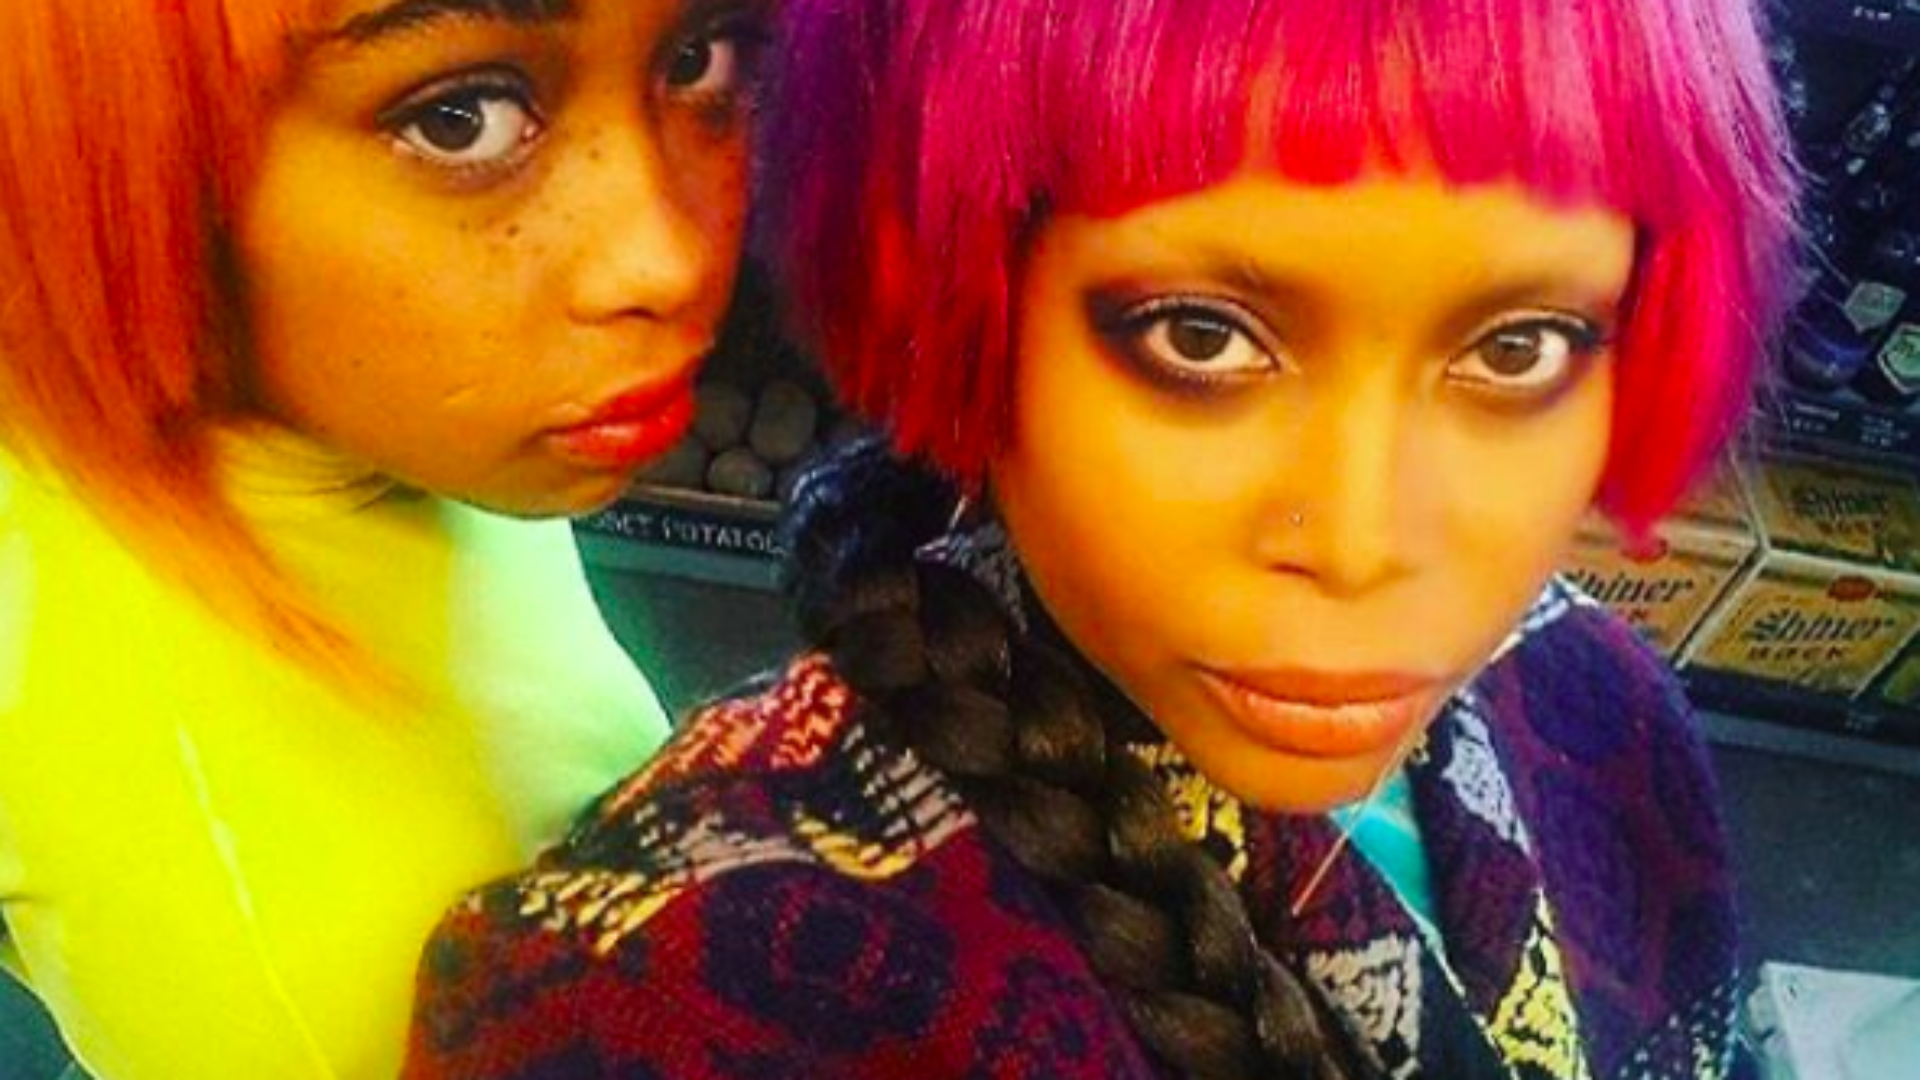 WATCH: Erykah Badu's 13-Year-Old Daughter Puma Serenades Her Mom For Her Birthday And We're In Awe